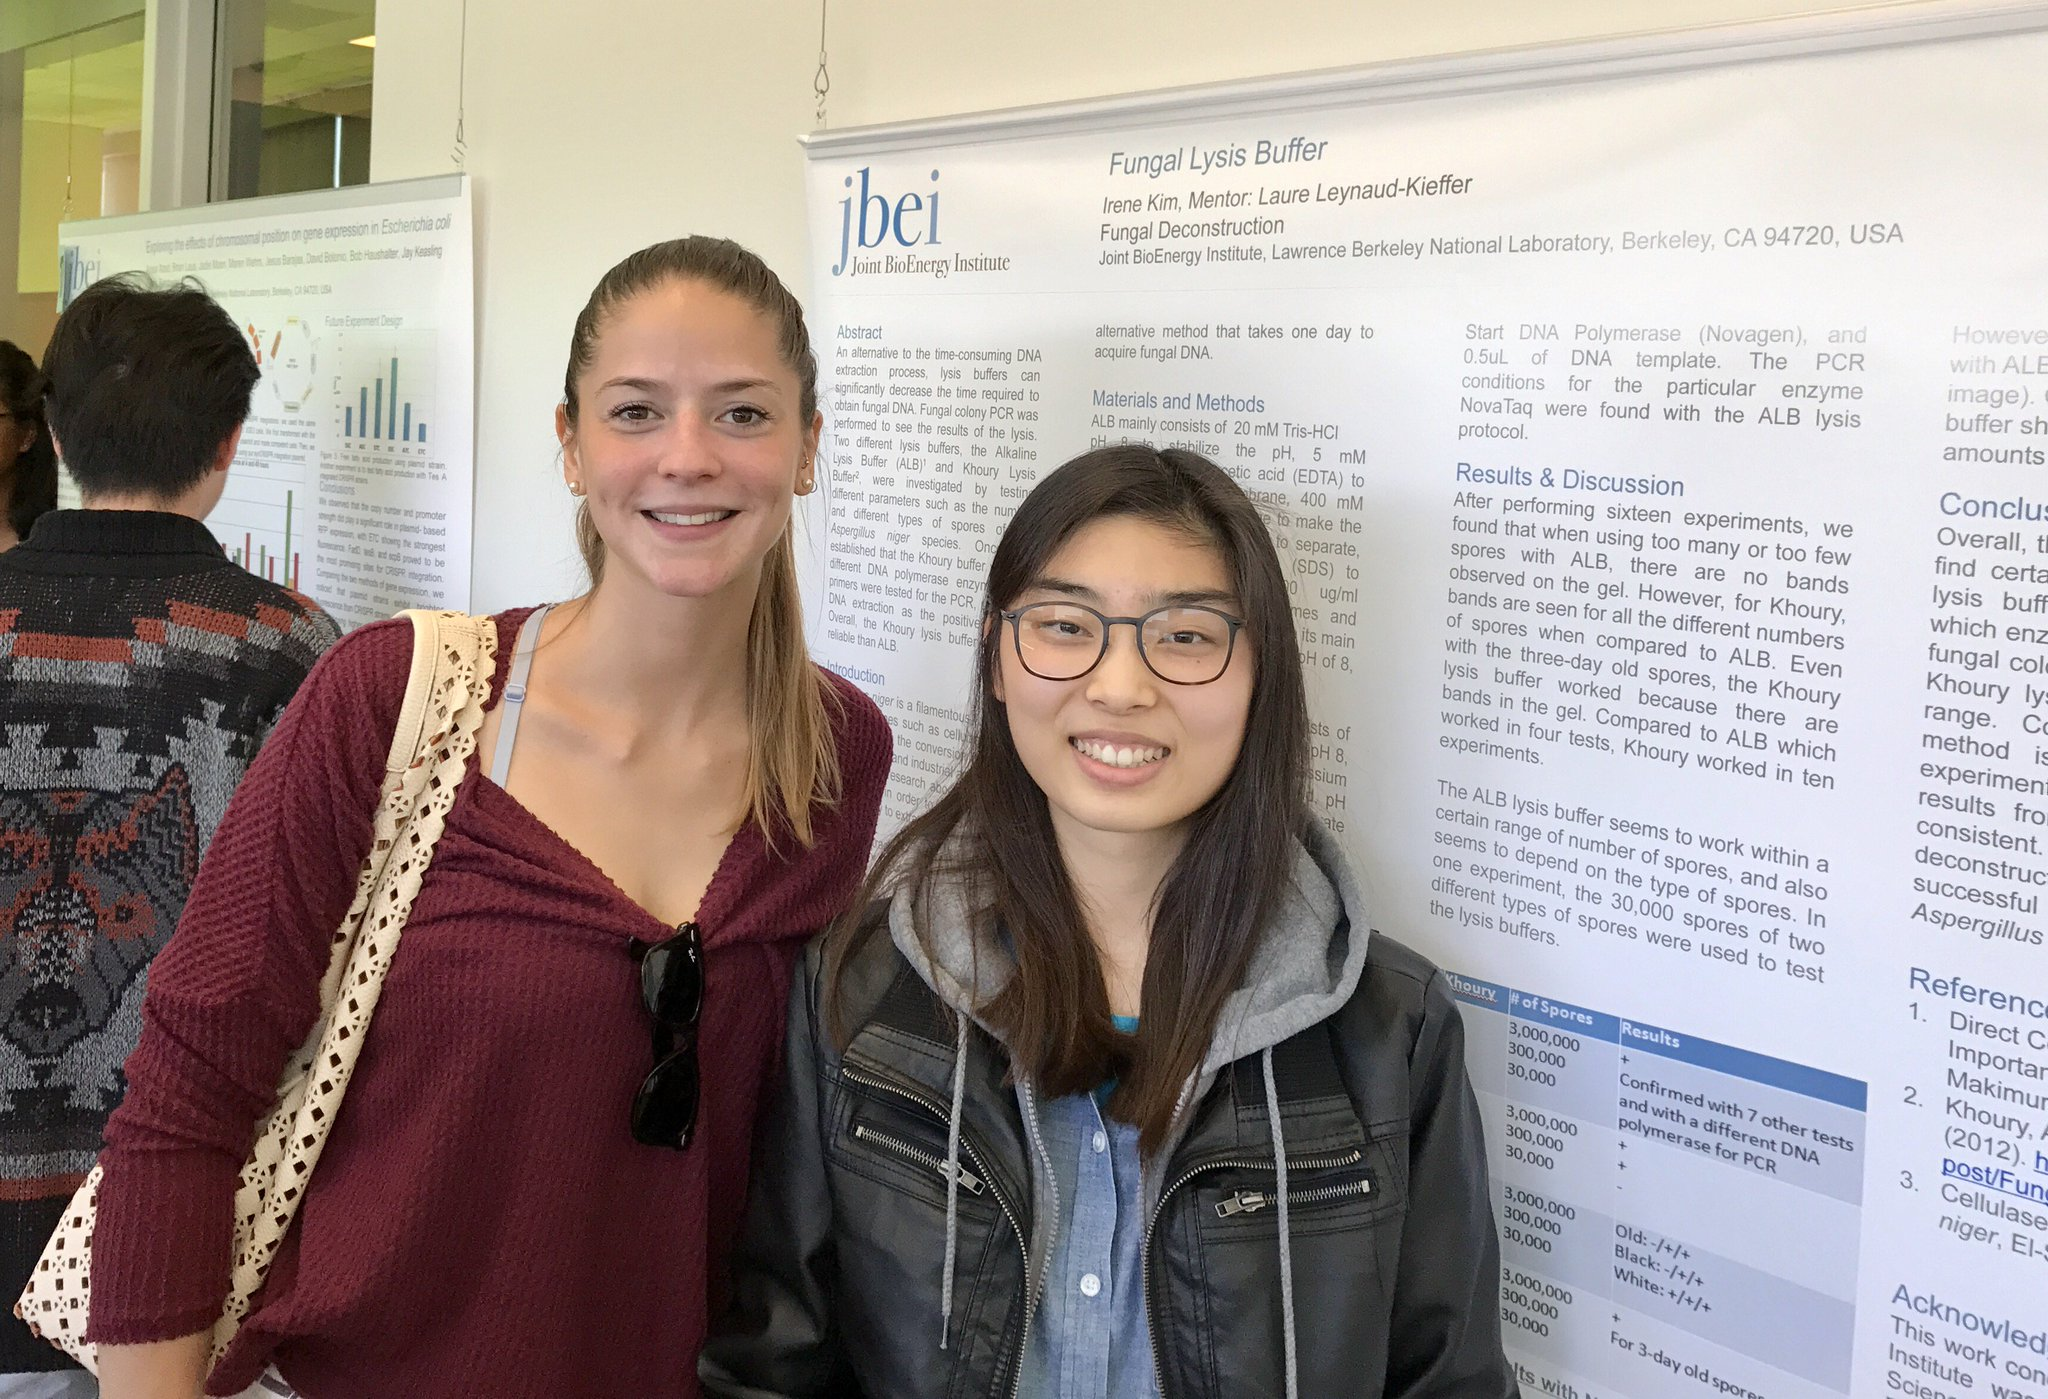 Proud mentor Laure Leynaud-Kieffer w/ @UCBerkeley undergrad Irene Kim intern @JBEI_ Decon Div #BioBSE #BioSciNextGen https://t.co/GFwAJkU4lE https://t.co/LfGk1uoi2I